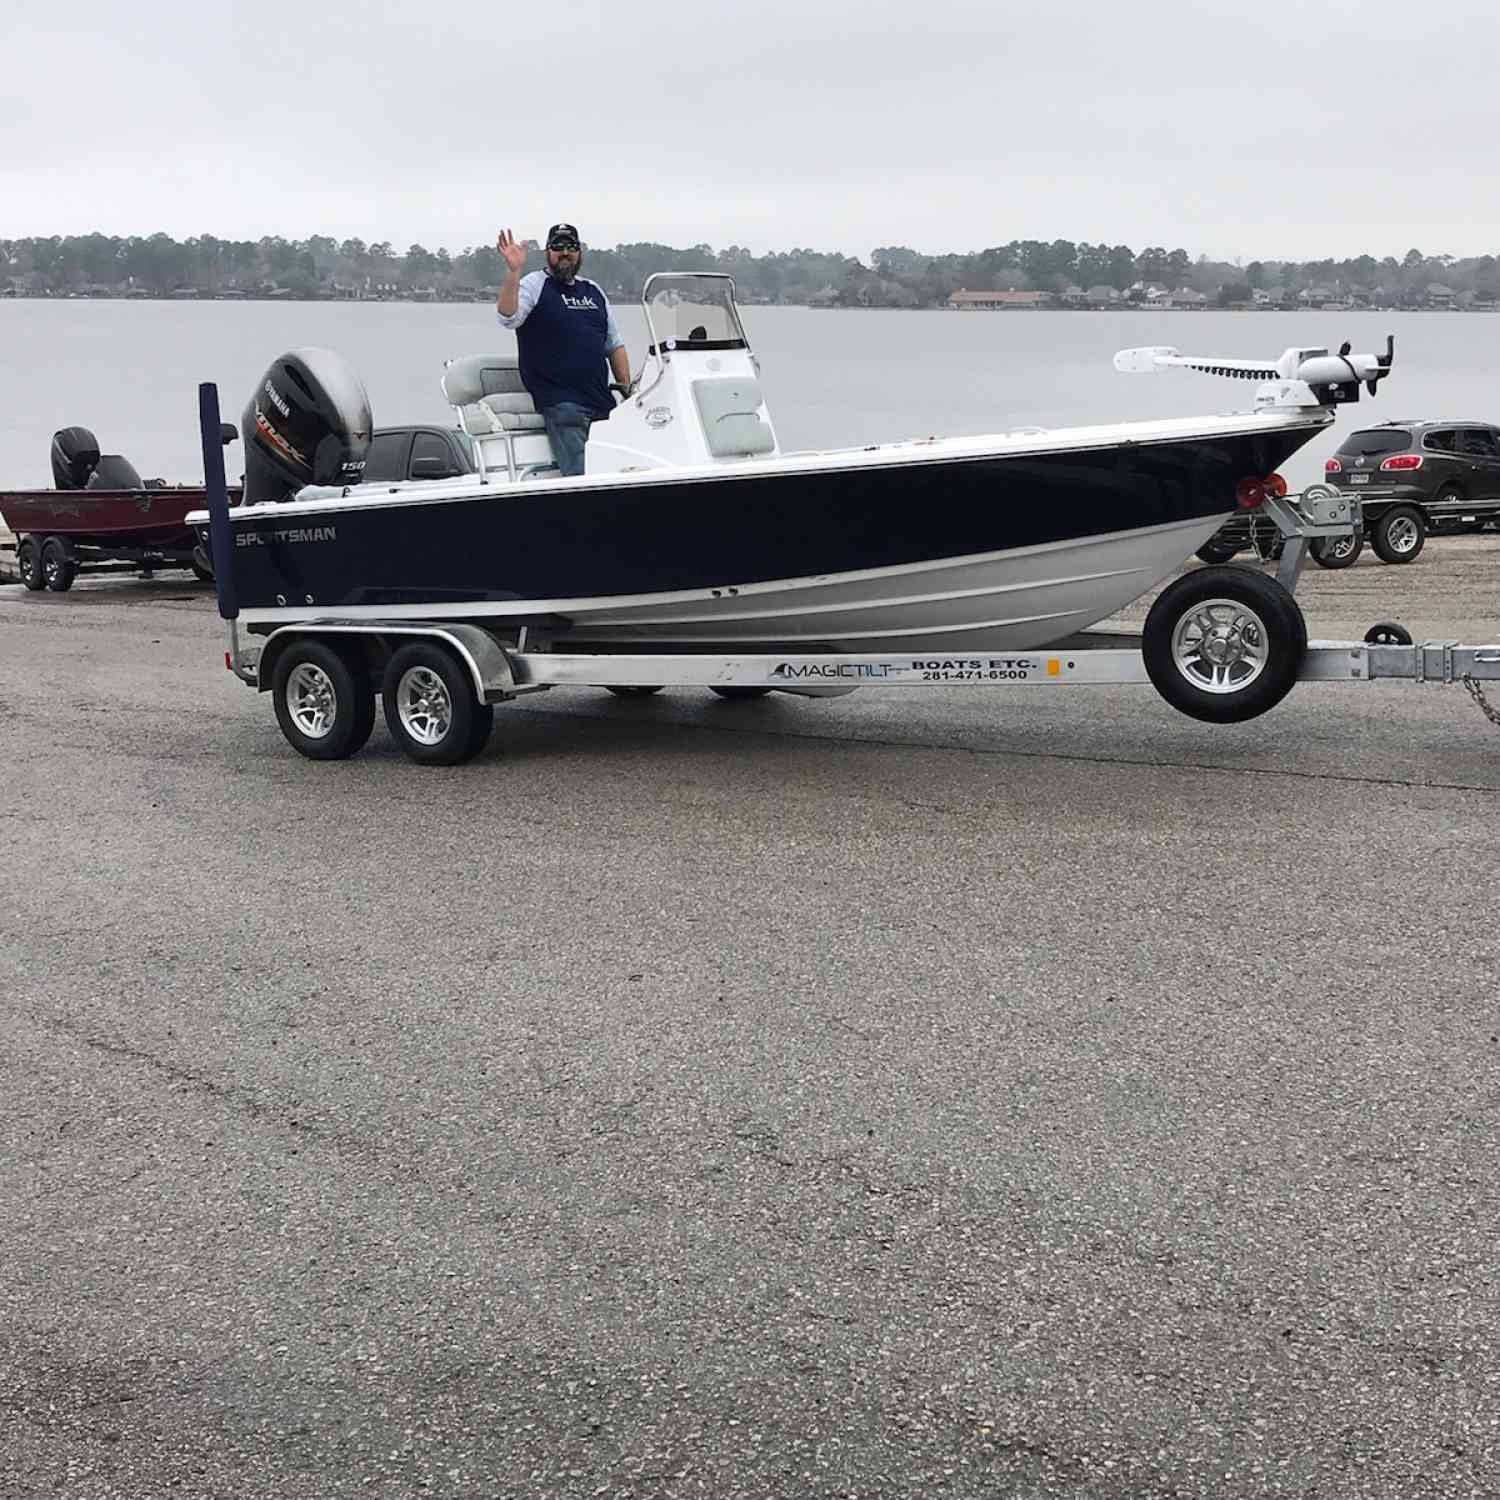 Title: Madden Voyage!! Love this boat - On board their Sportsman Masters 207 Bay Boat - Location: Lake Conroe. Participating in the Photo Contest #SportsmanFebruary2019